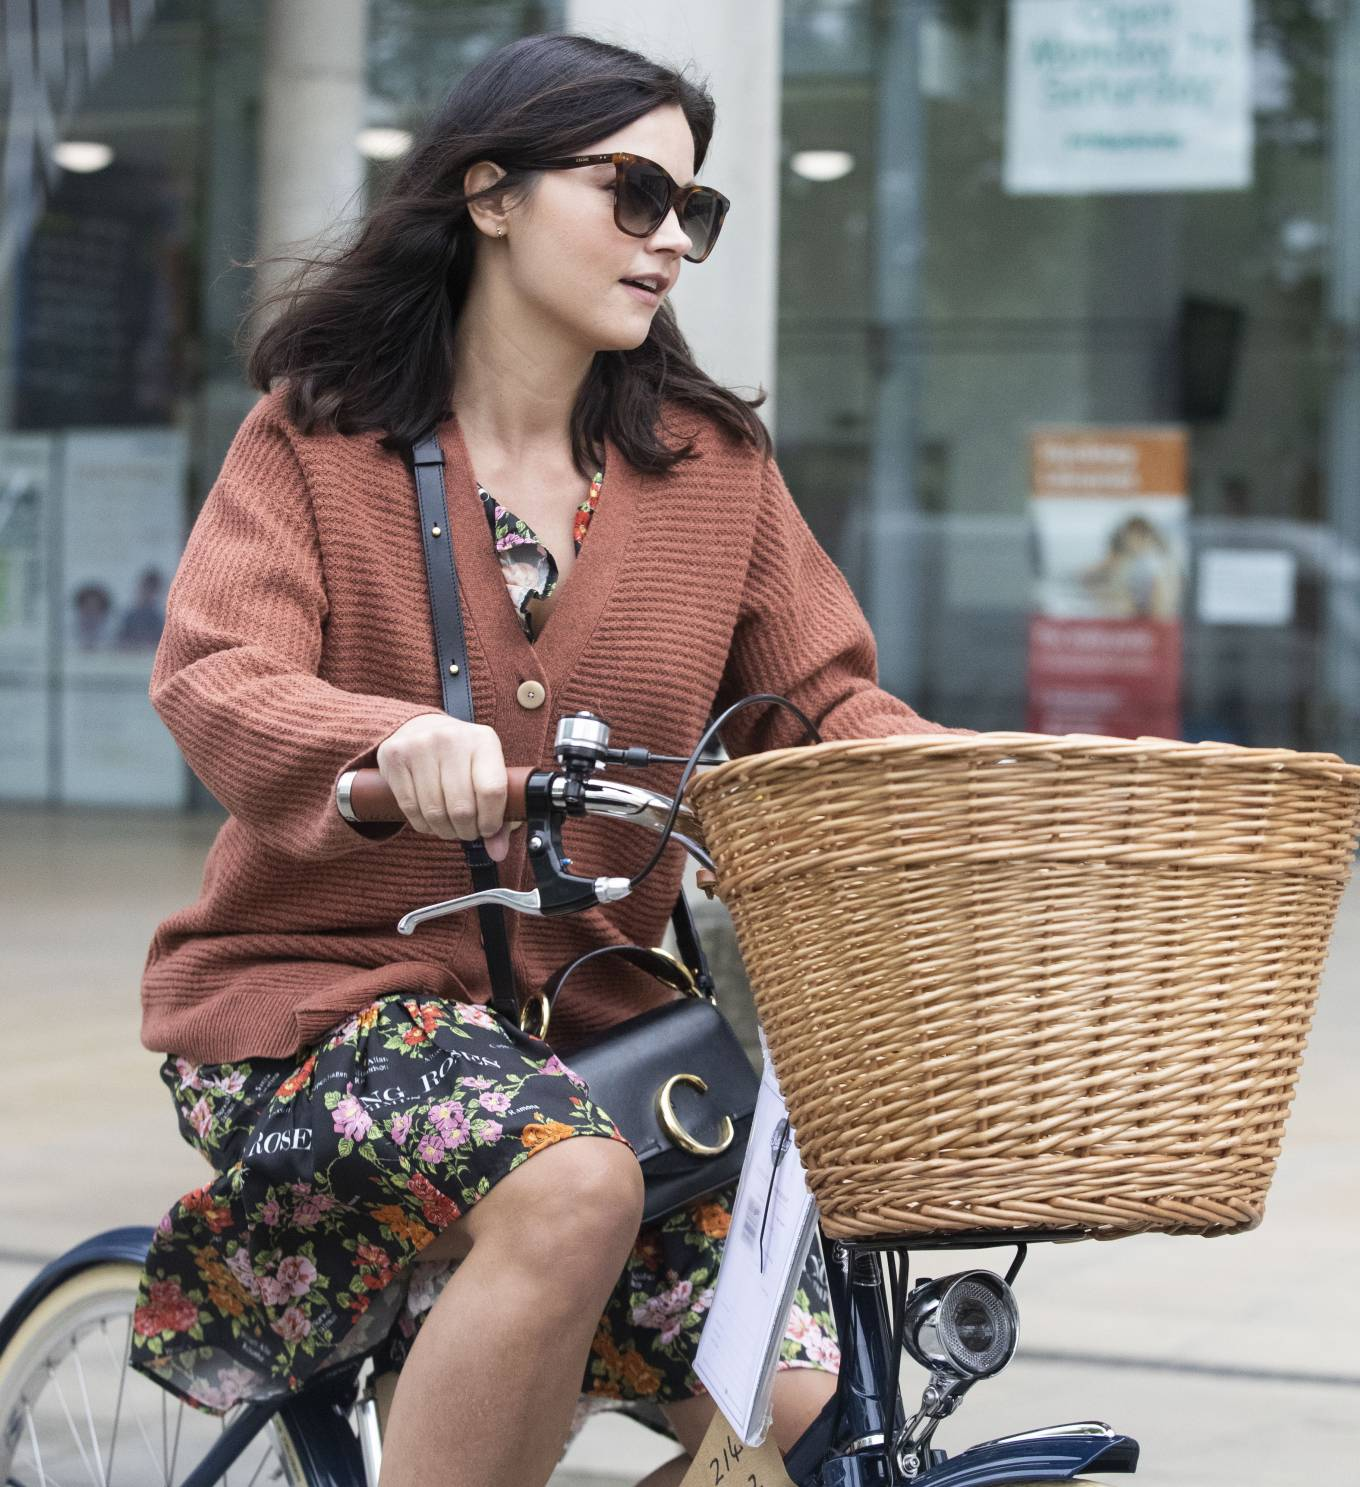 Jenna Coleman - Riding her new bike in London